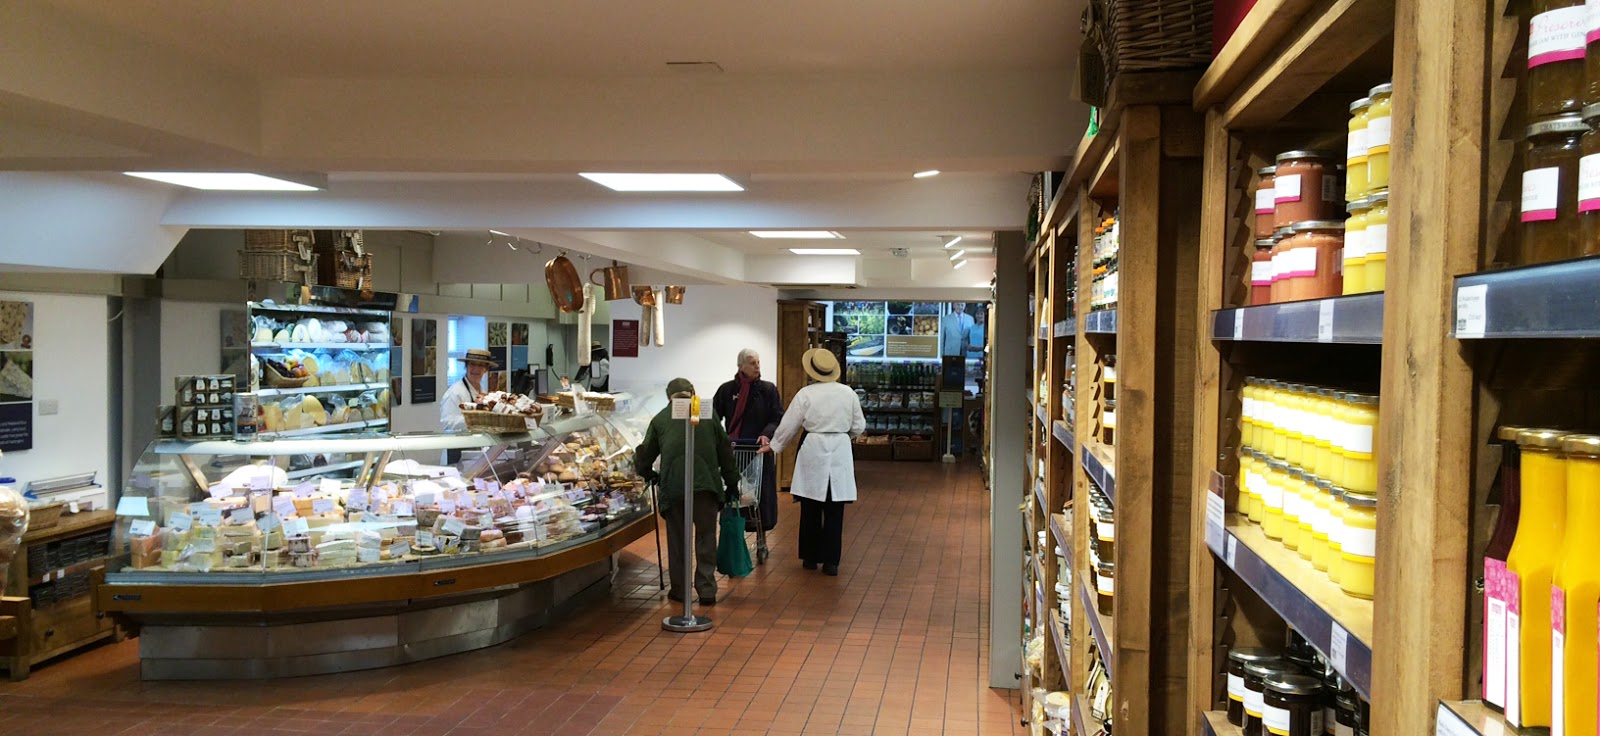 New look for the estate farm shop